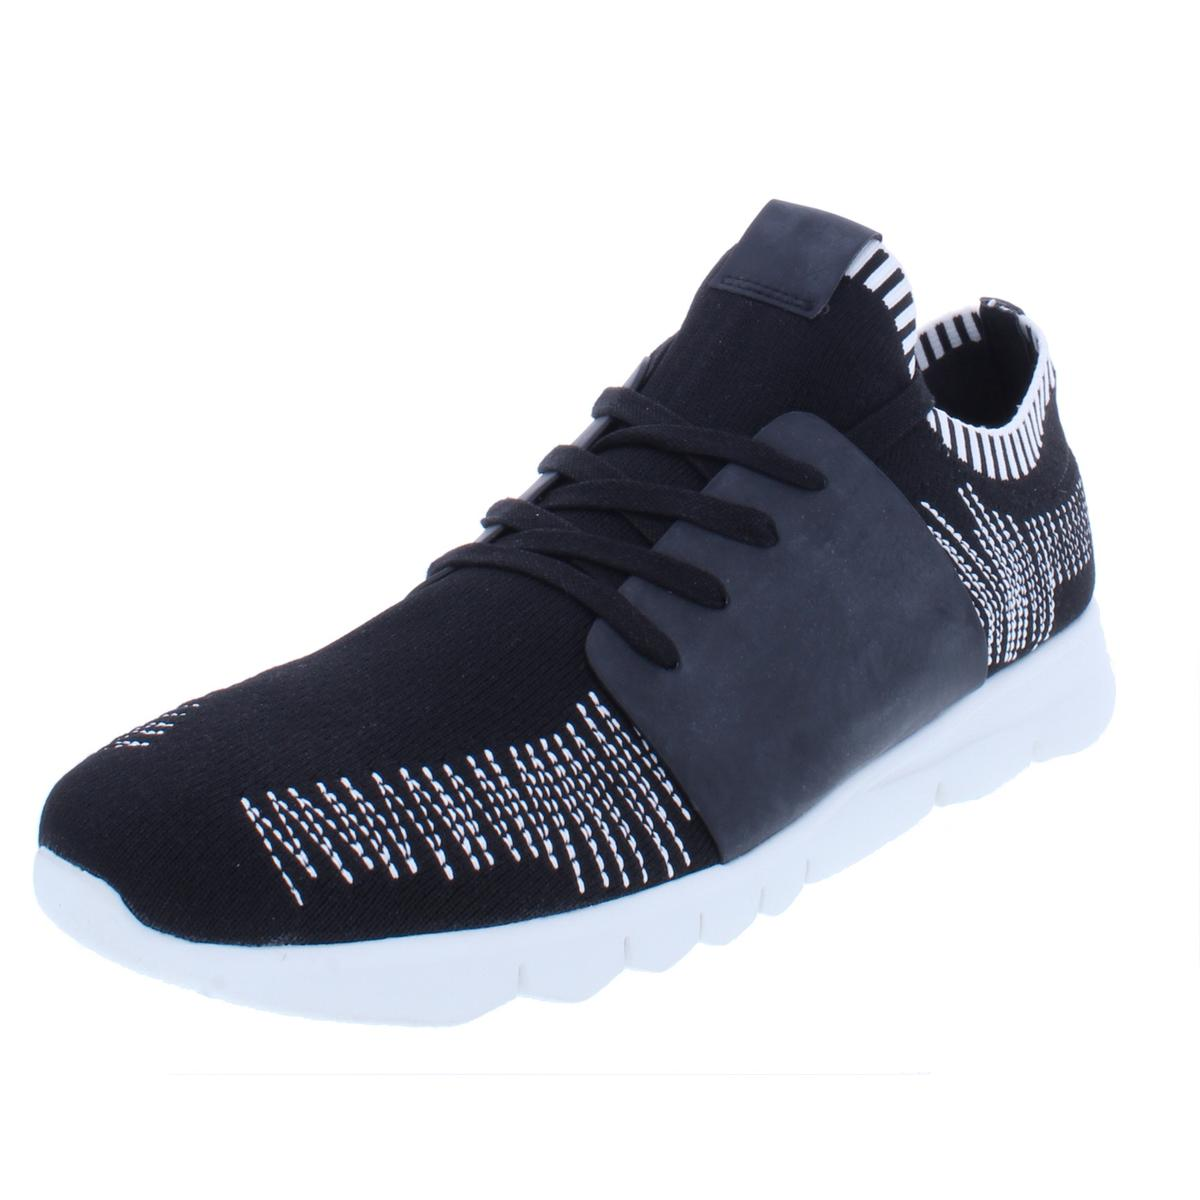 5a69c0004f7 Details about Steve Madden Mens Matty Knit Low Top Athletic Shoes Sneakers  BHFO 0165